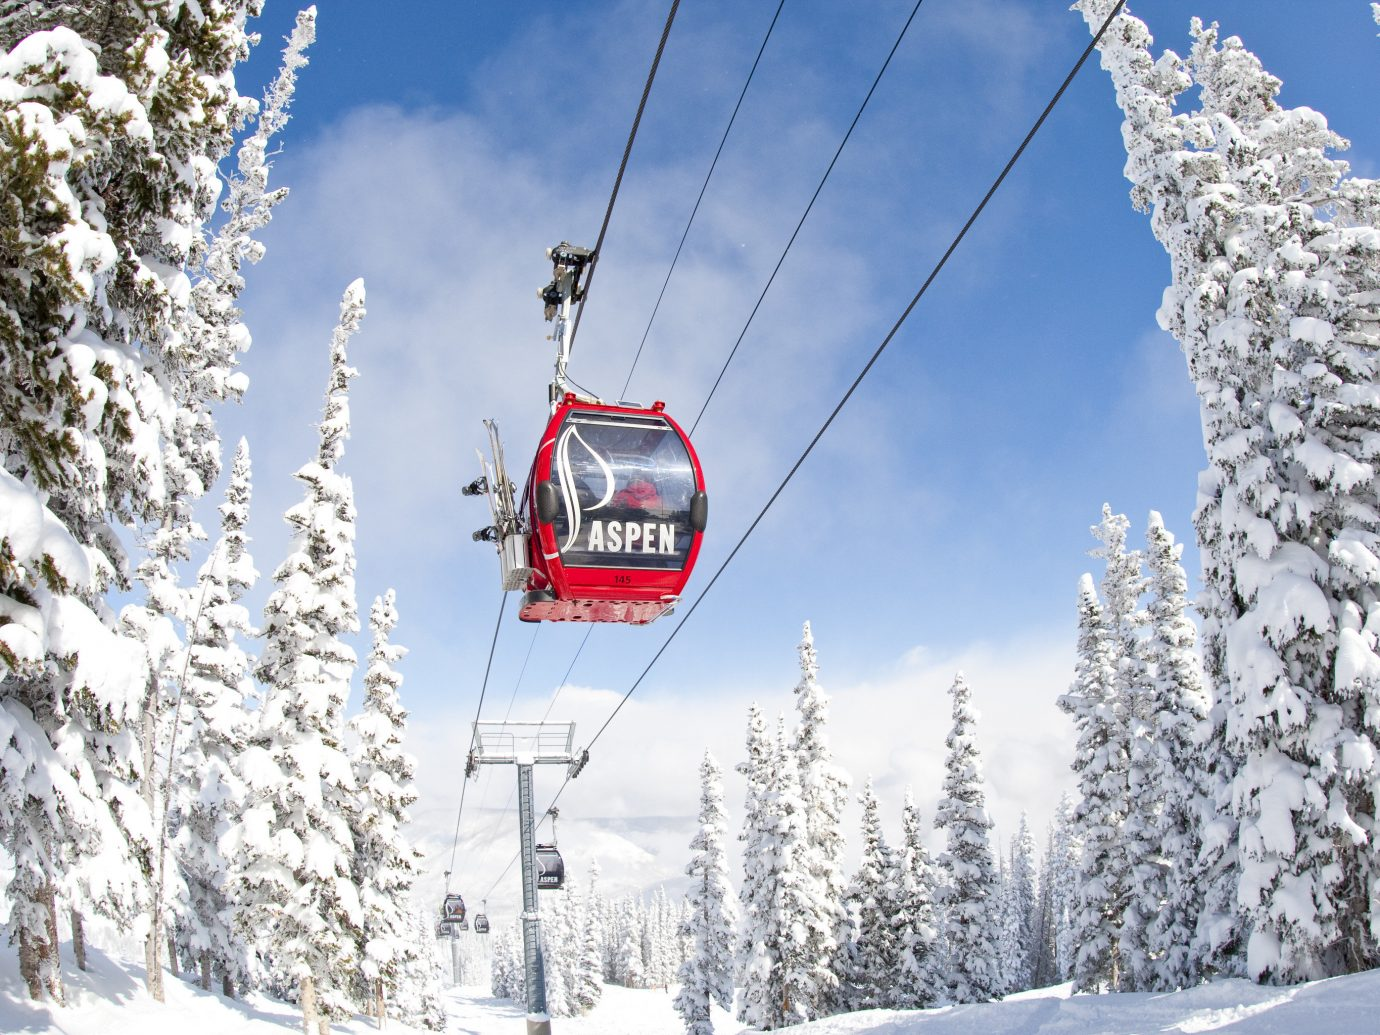 News Trip Ideas outdoor snow tree ski tow transport Winter skiing piste geological phenomenon Ski slope sports hill ski equipment mountain range winter sport nordic skiing air Resort alpine skiing downhill sports equipment